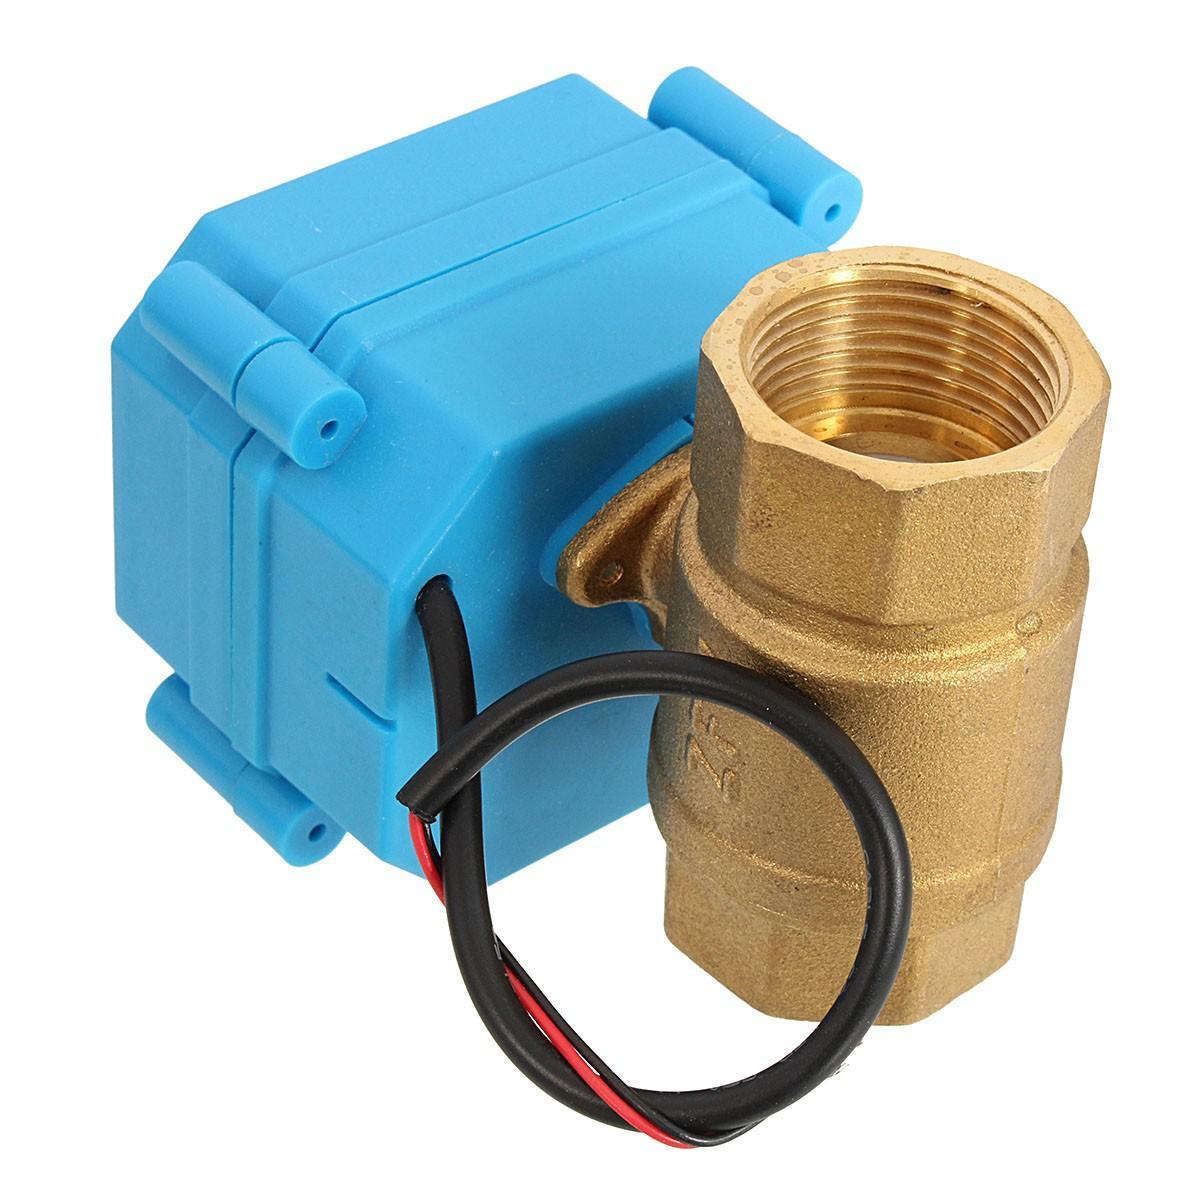 """G3/4"""" DN20 (reduce port) DC12V 2 Way Control Motorized Electrical Ball Valve: Buy Online at Best Prices in Bangladesh 